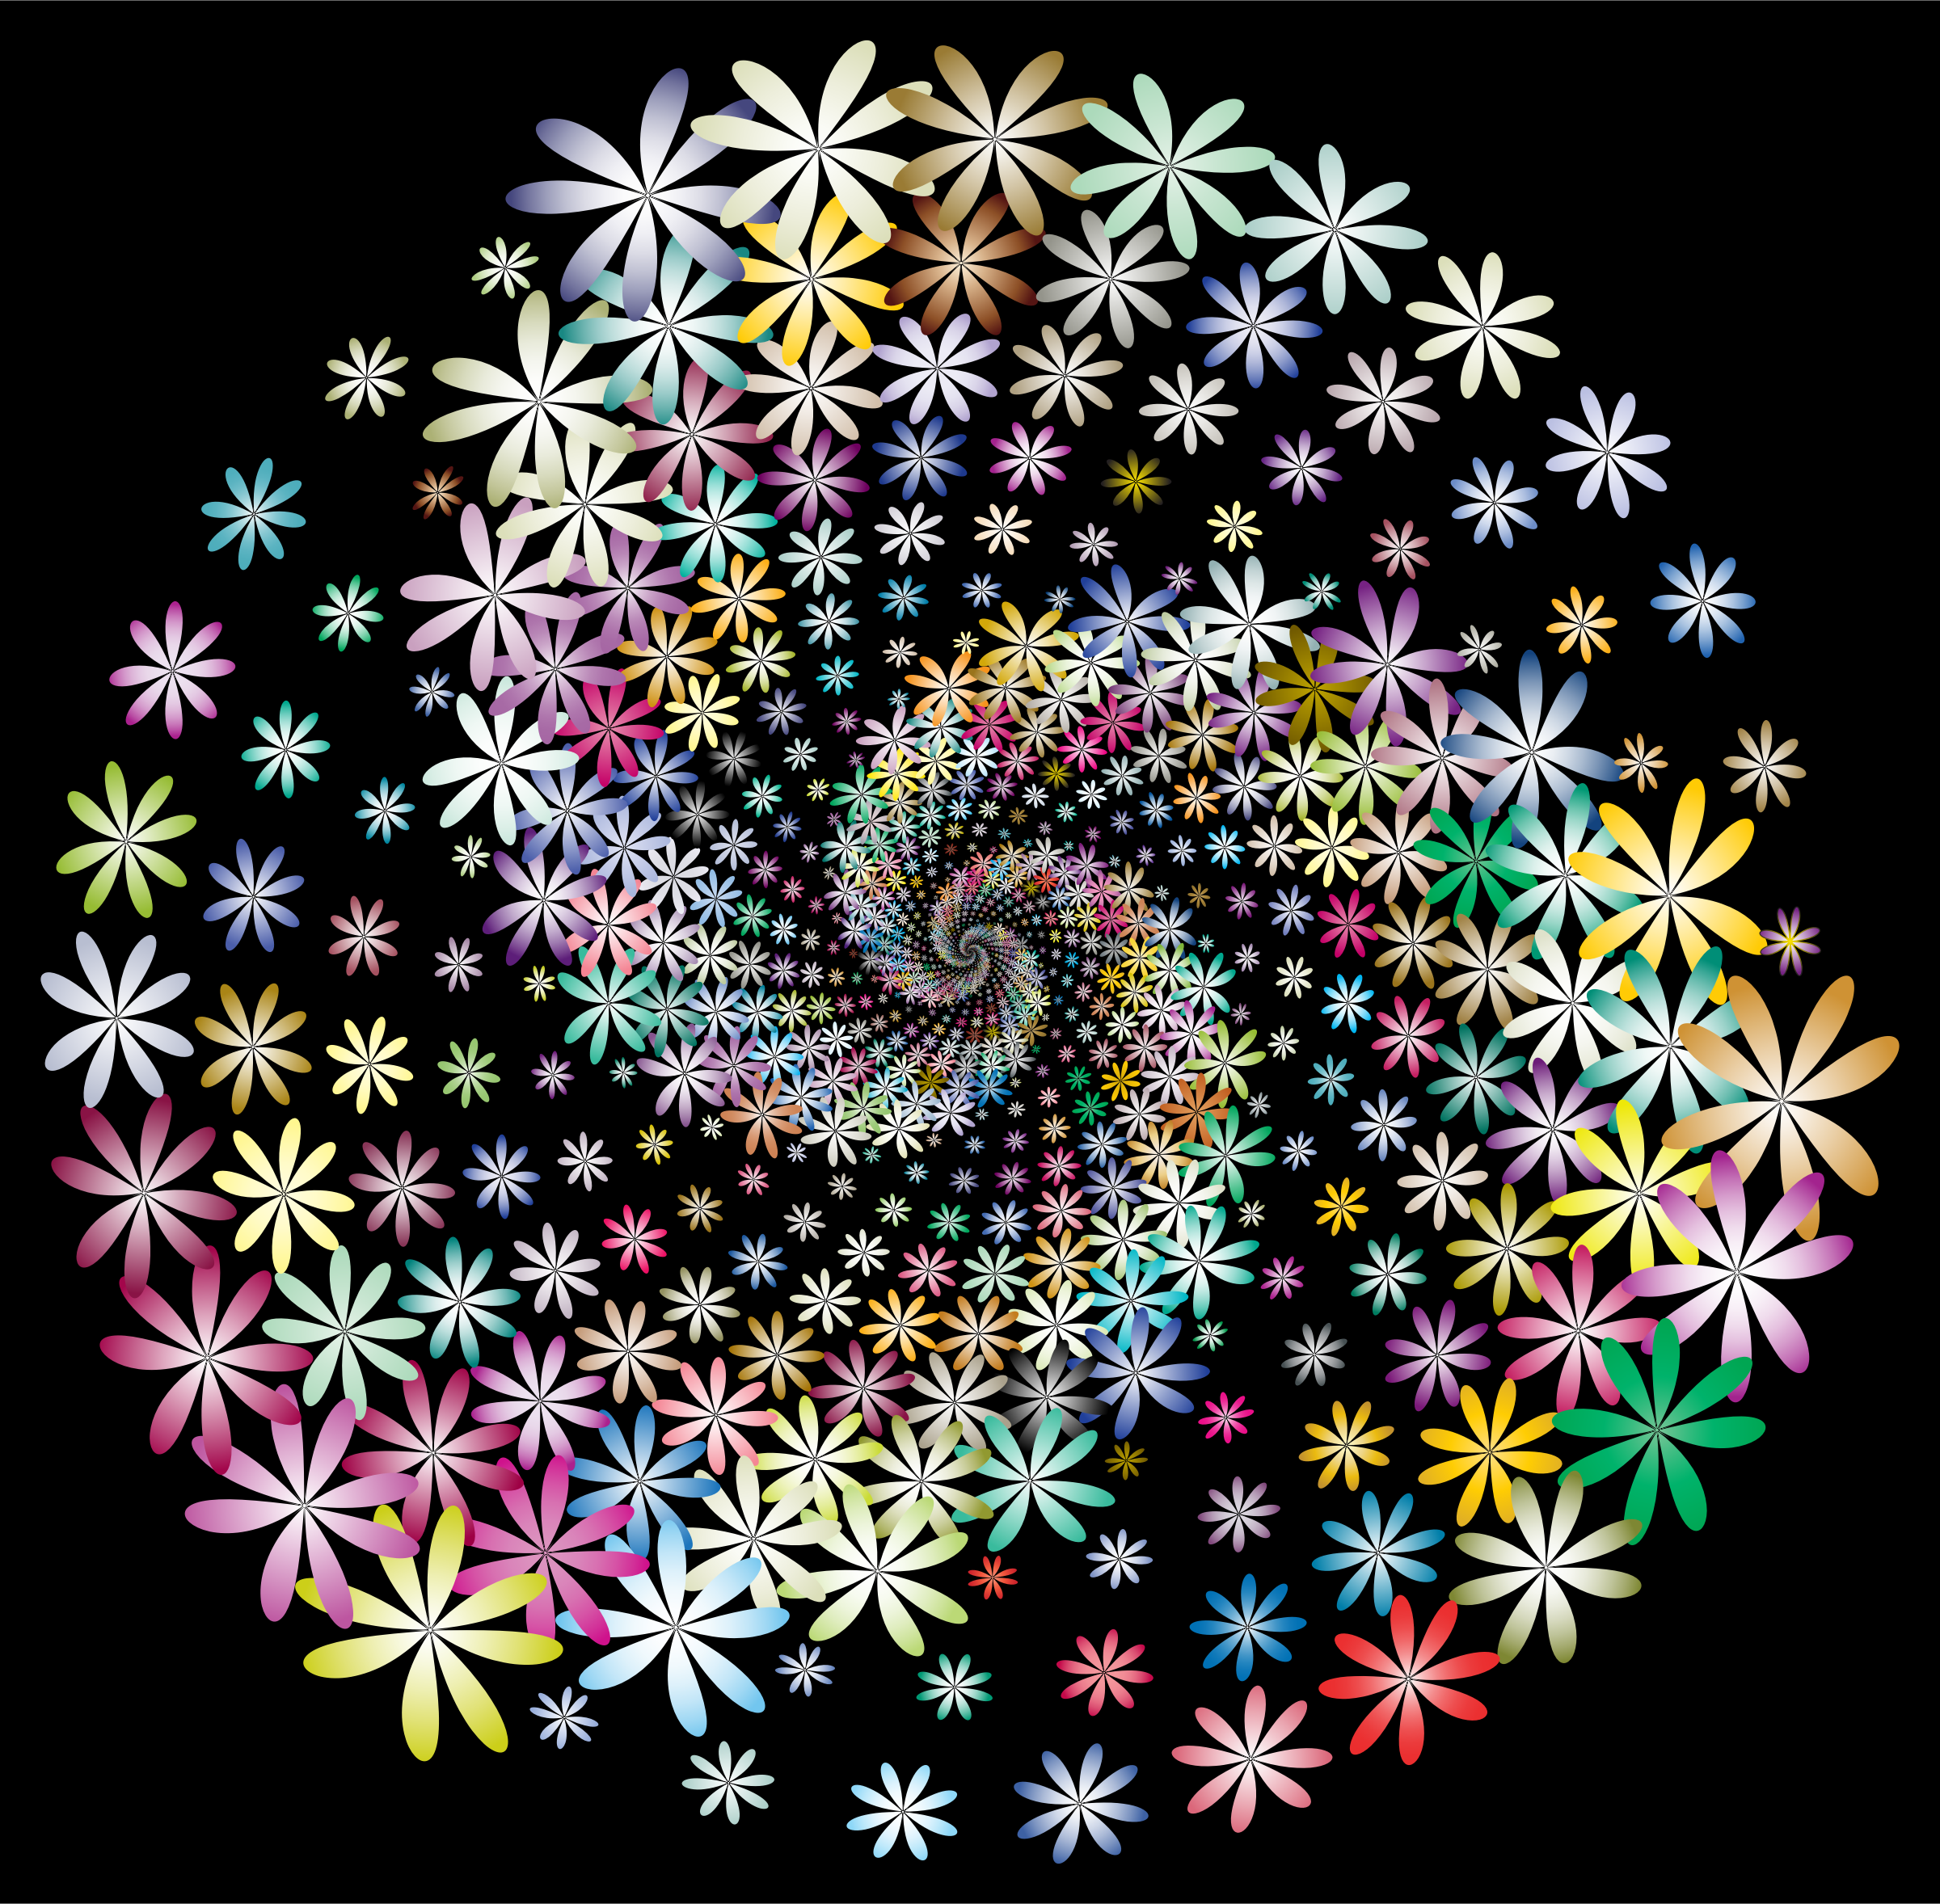 Prismatic Floral Vortex 2 With Background by GDJ